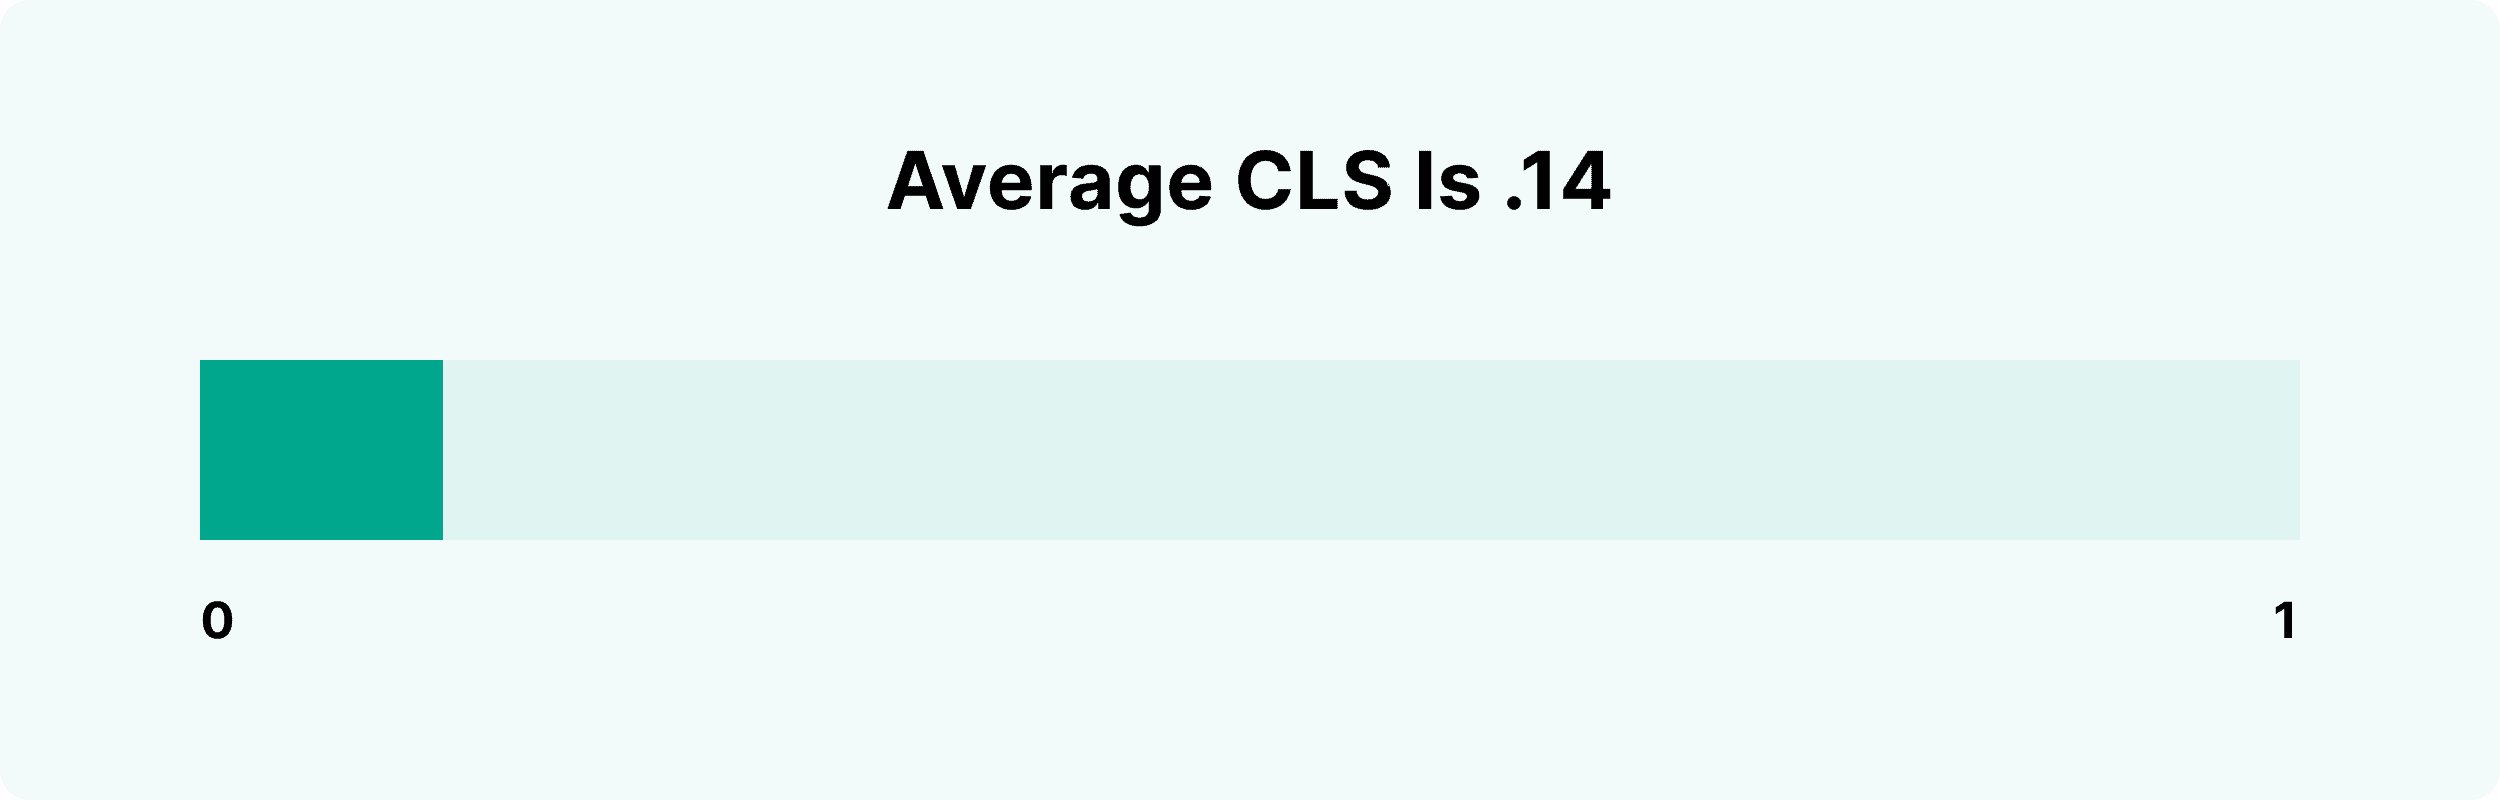 Average CLS is .14